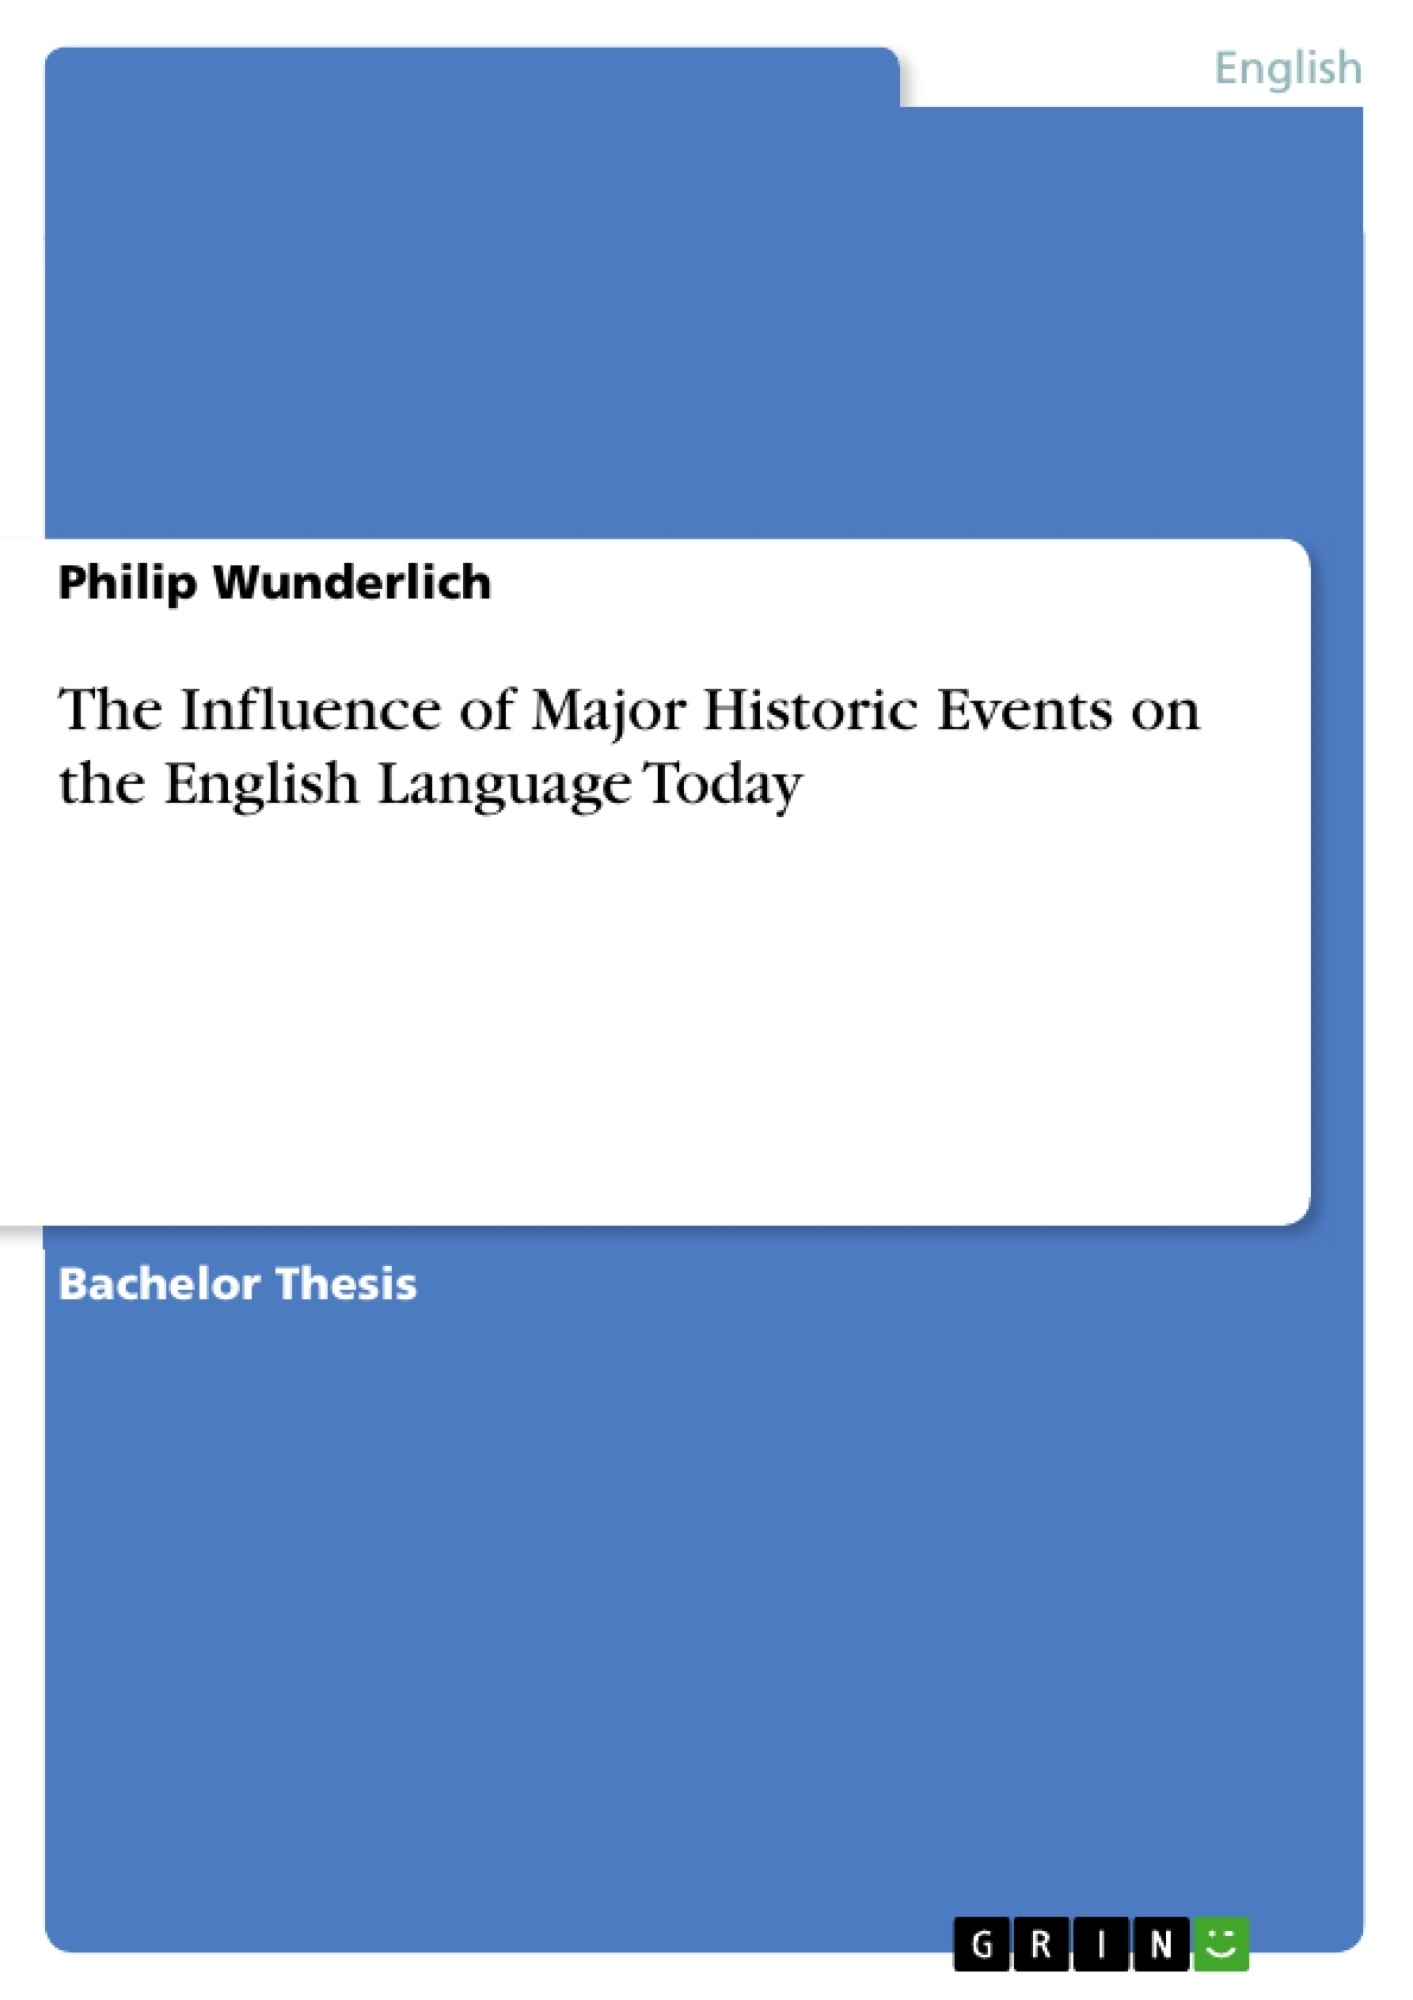 Title: The Influence of Major Historic Events on the English Language Today